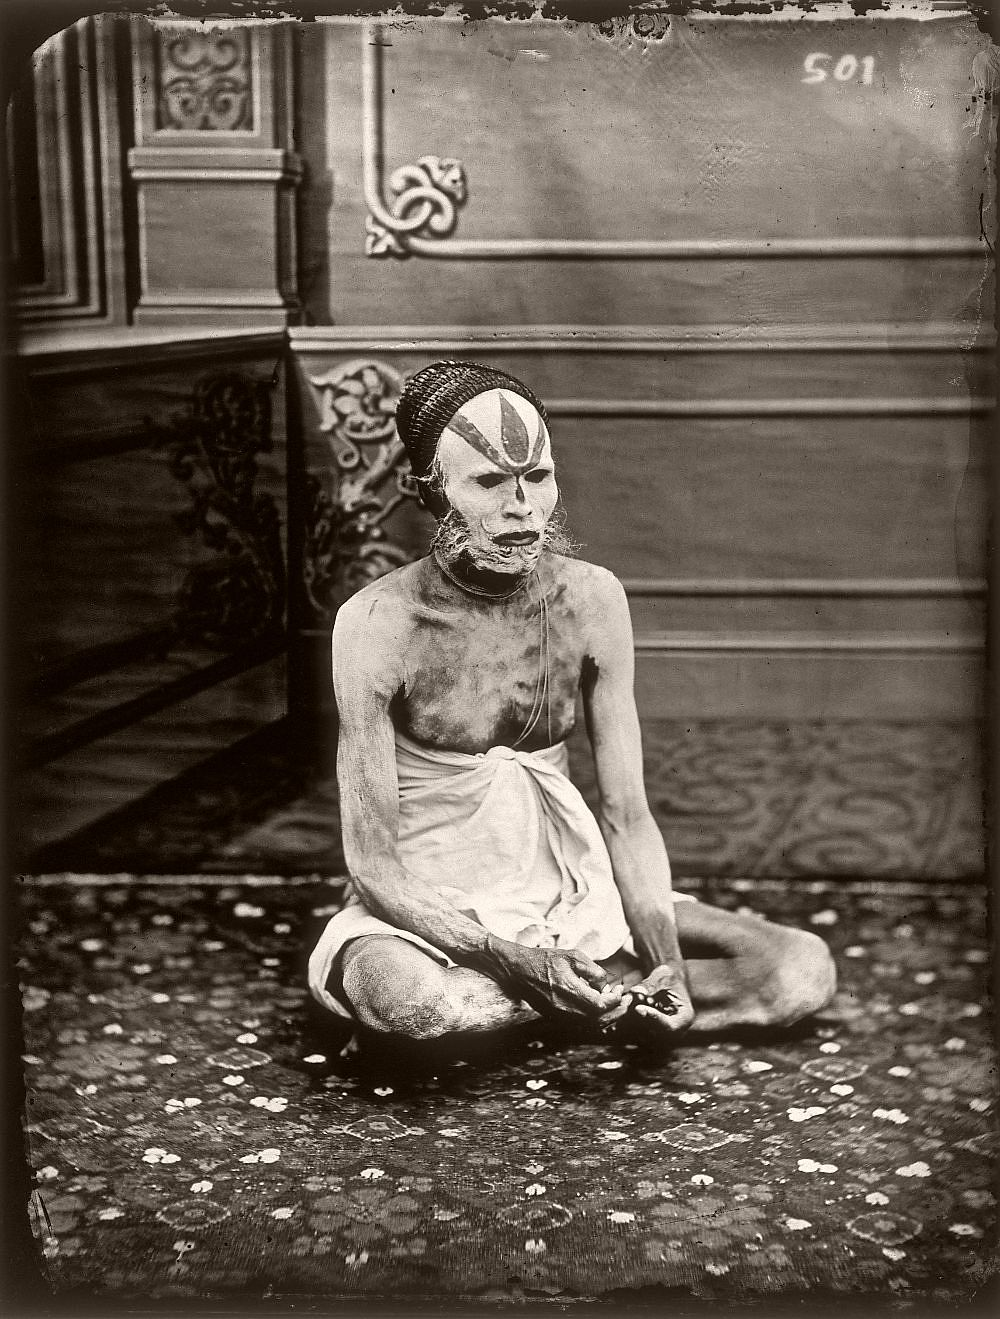 Portrait of a fakir, in the Royal Palace of Jaipur, India, 1857–1865. (Photo by Maharaja Ram Singh III/Alinari via Getty Images)